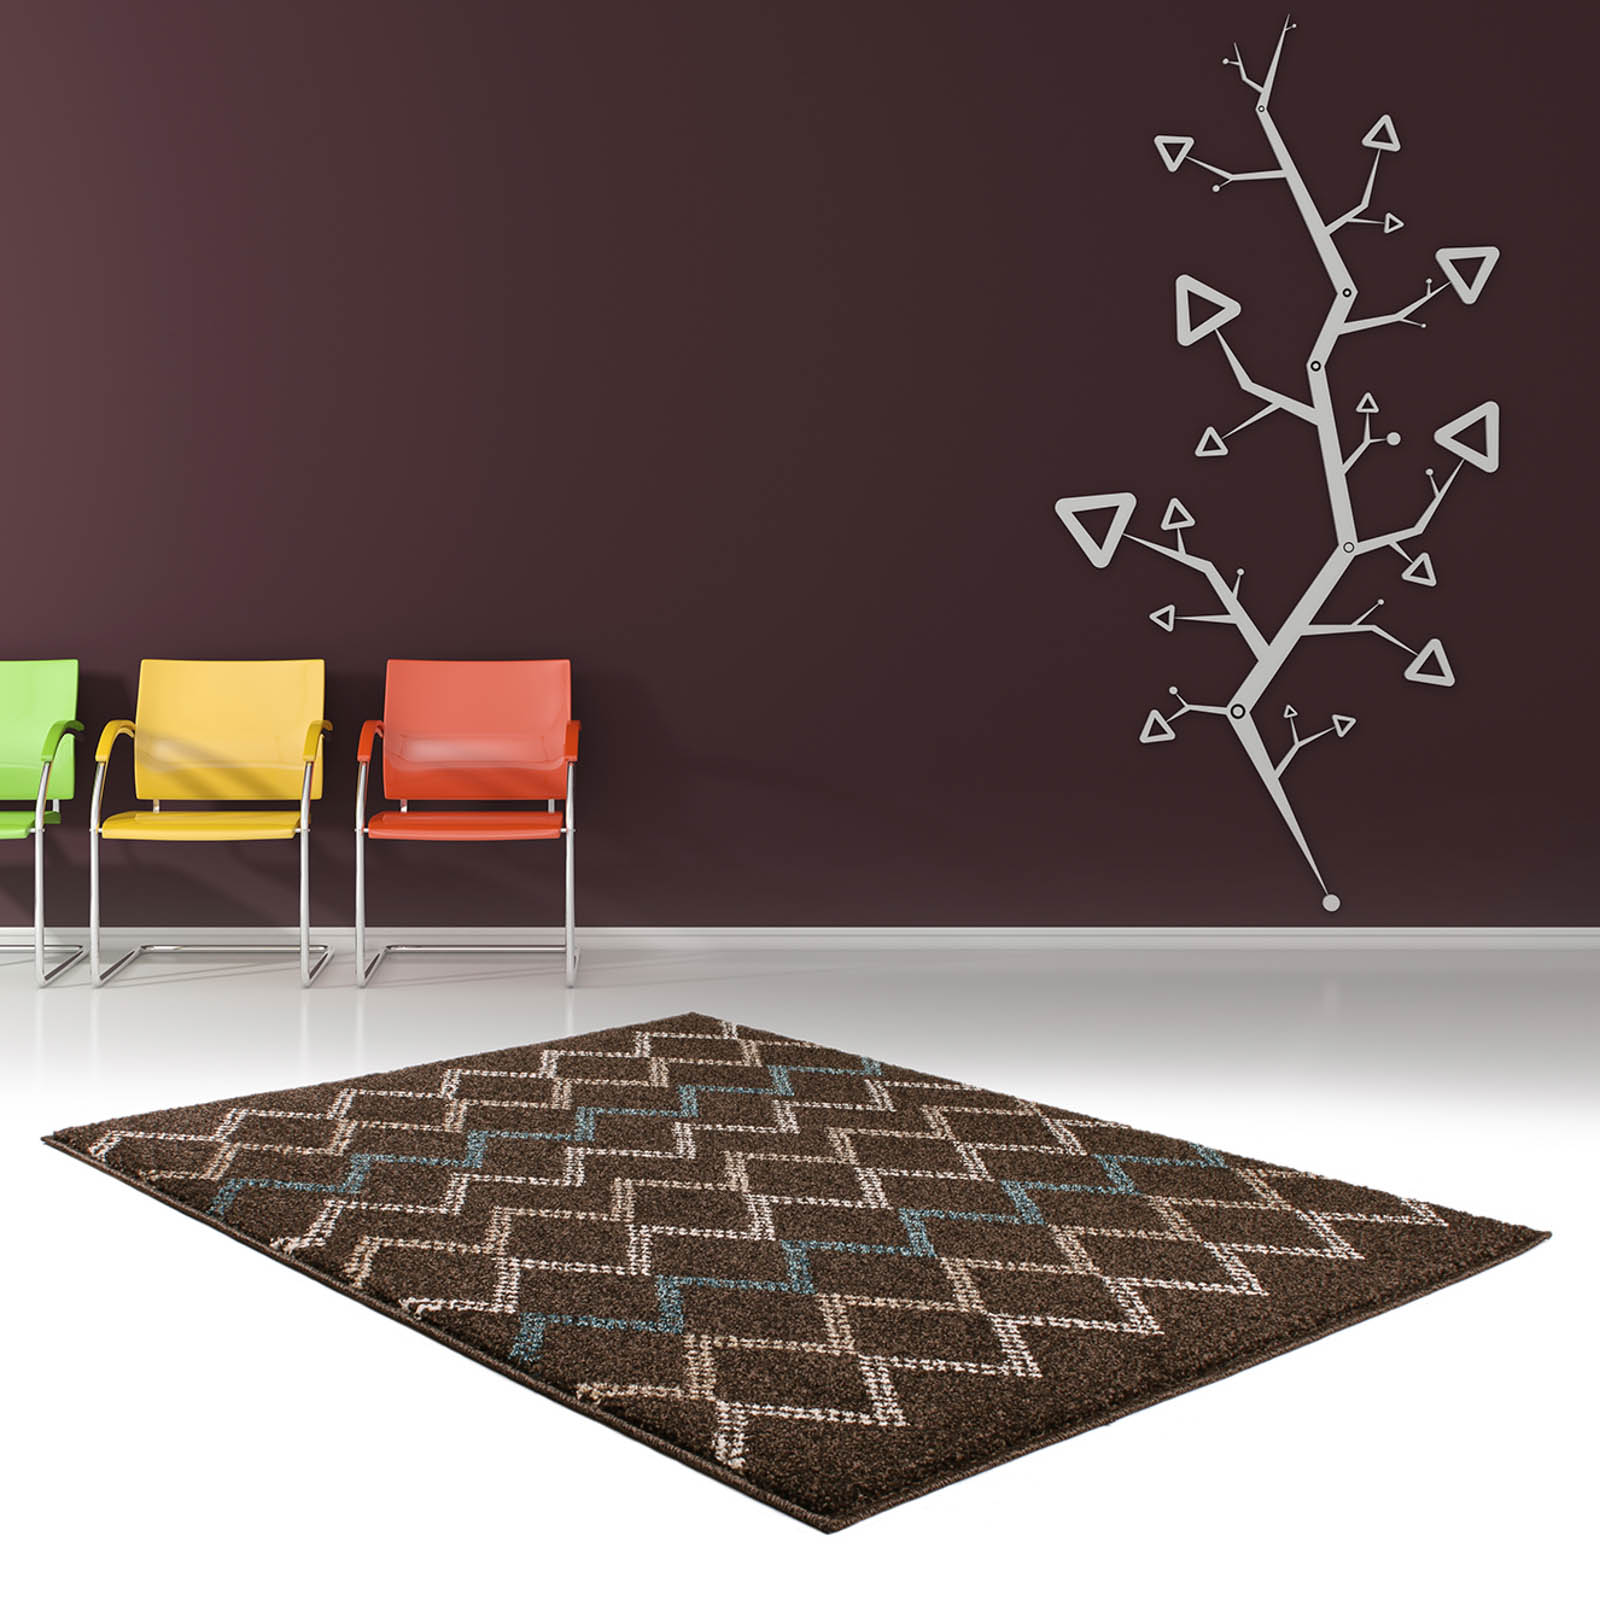 Marrakesh Rugs 2651 in Brown and Turquoise